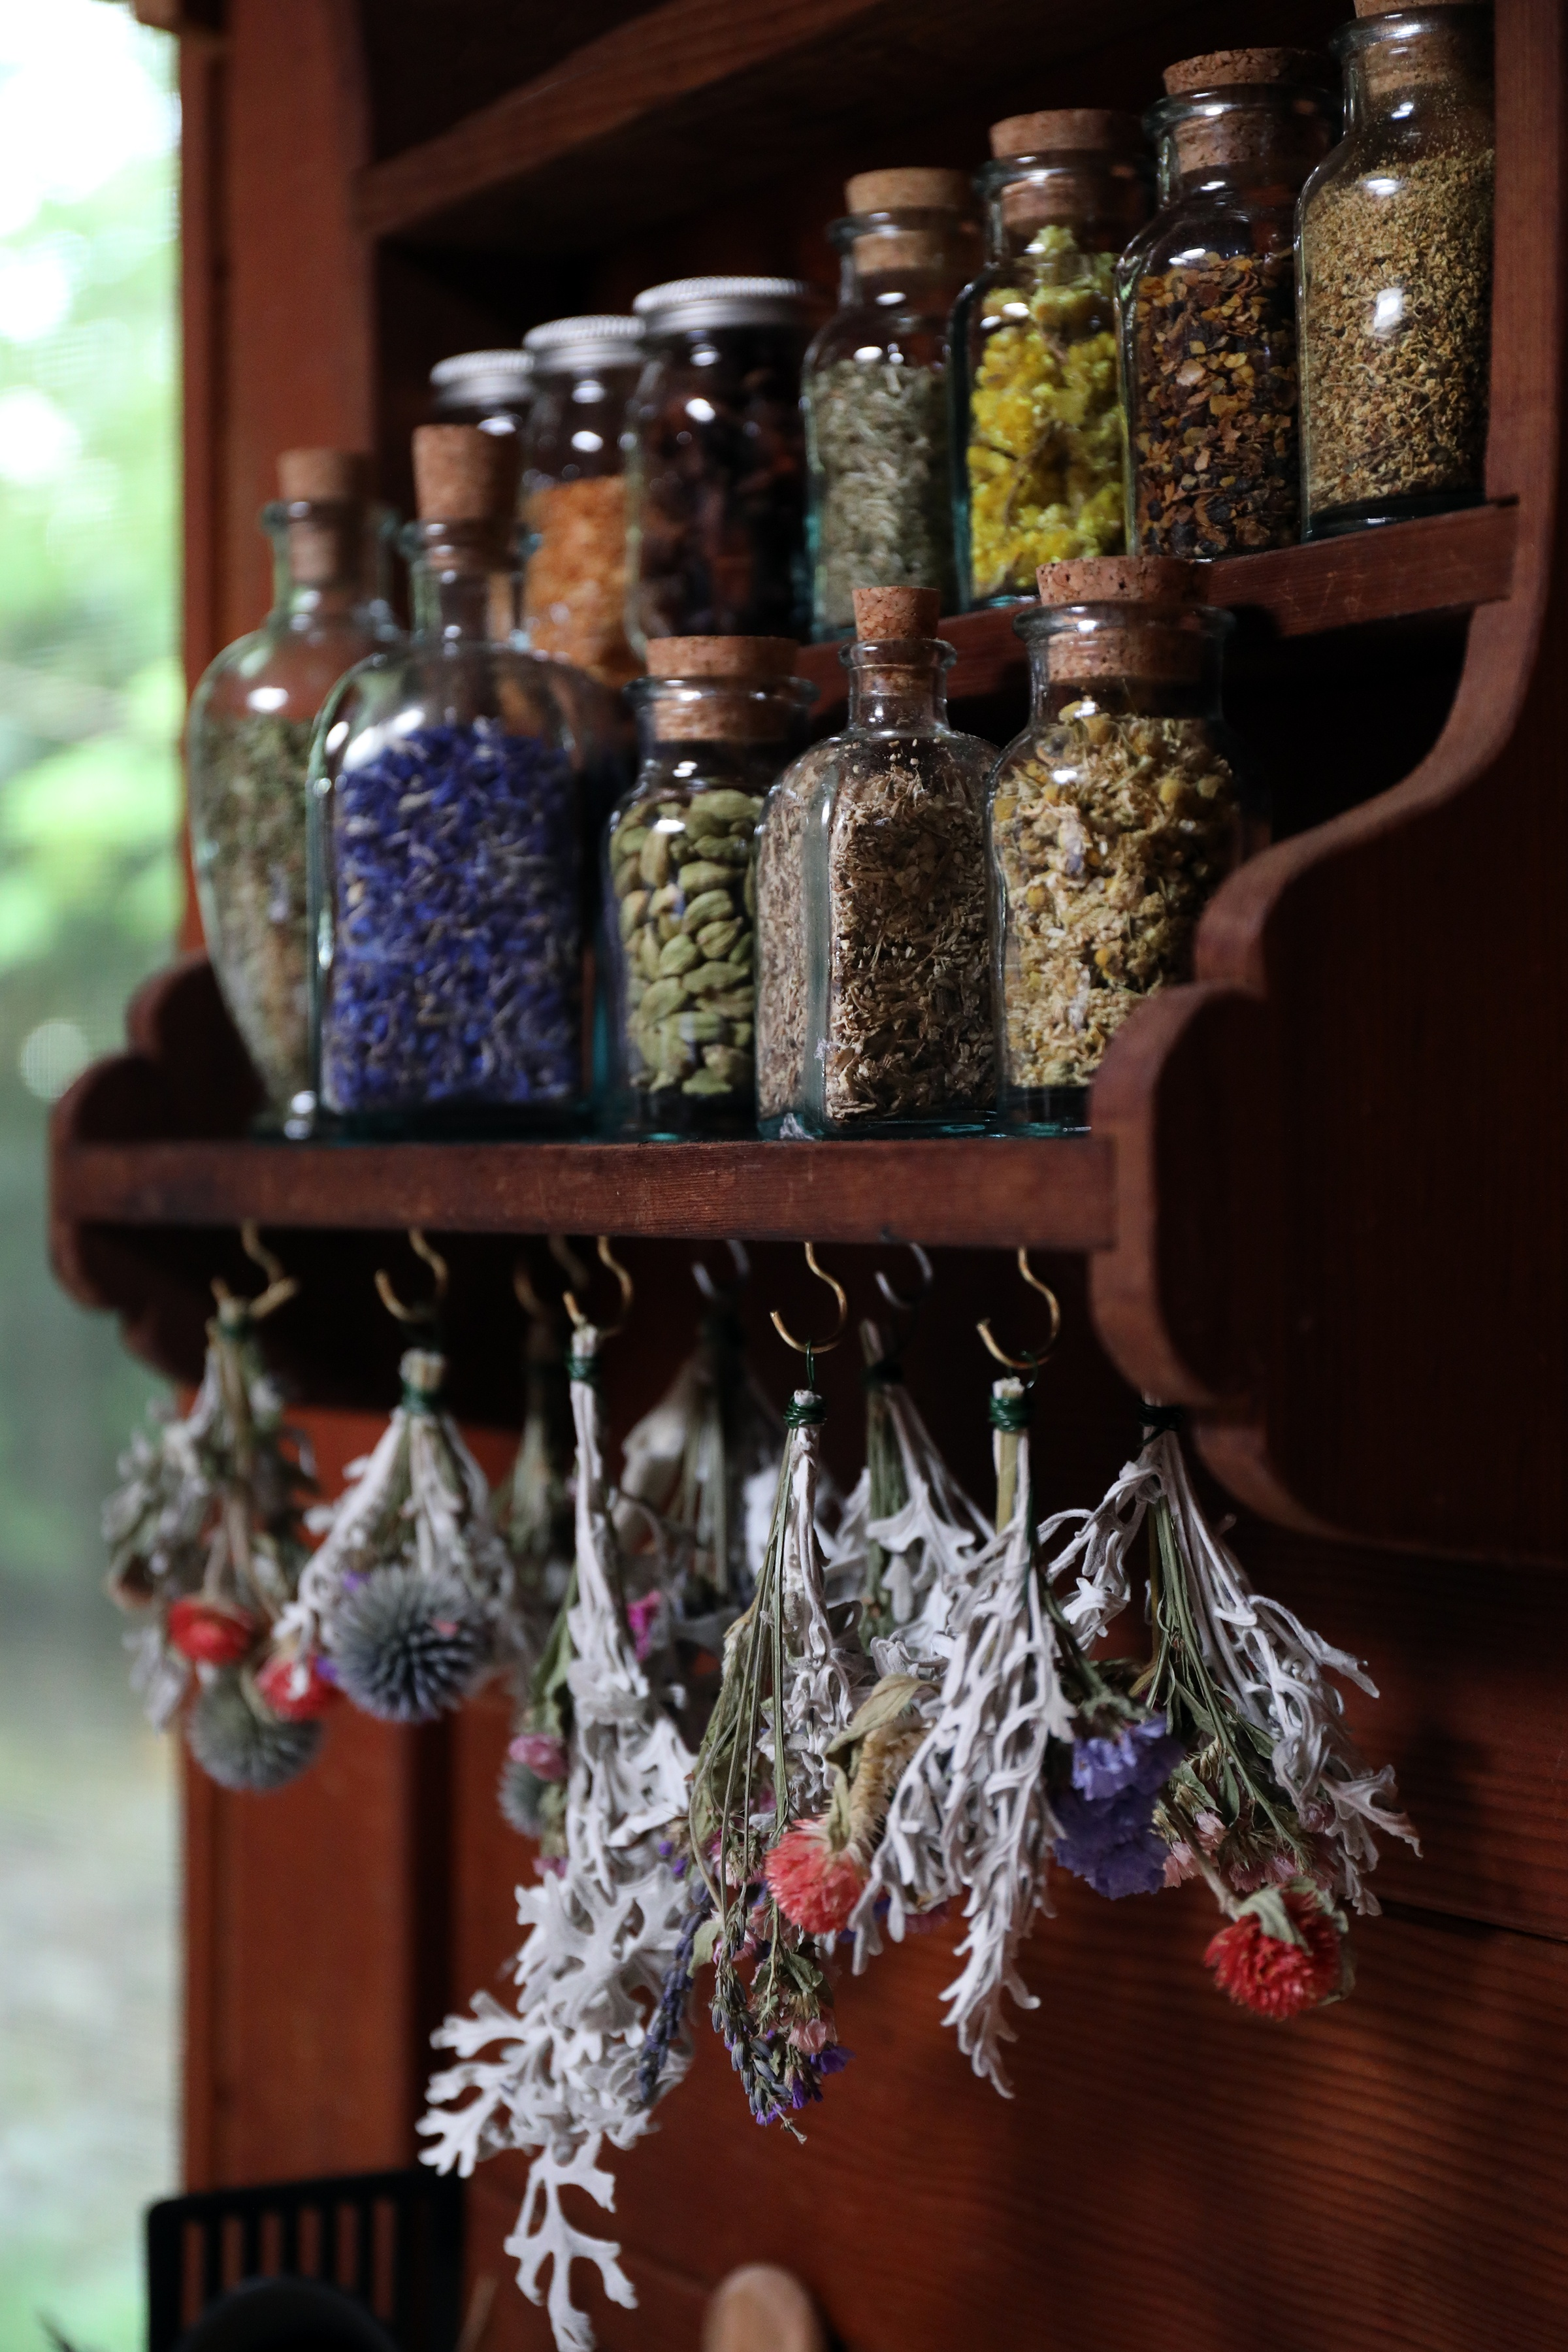 Herbal apothecary shelf with glass cork top bottles filled with dried herbs with hanging dried plants below